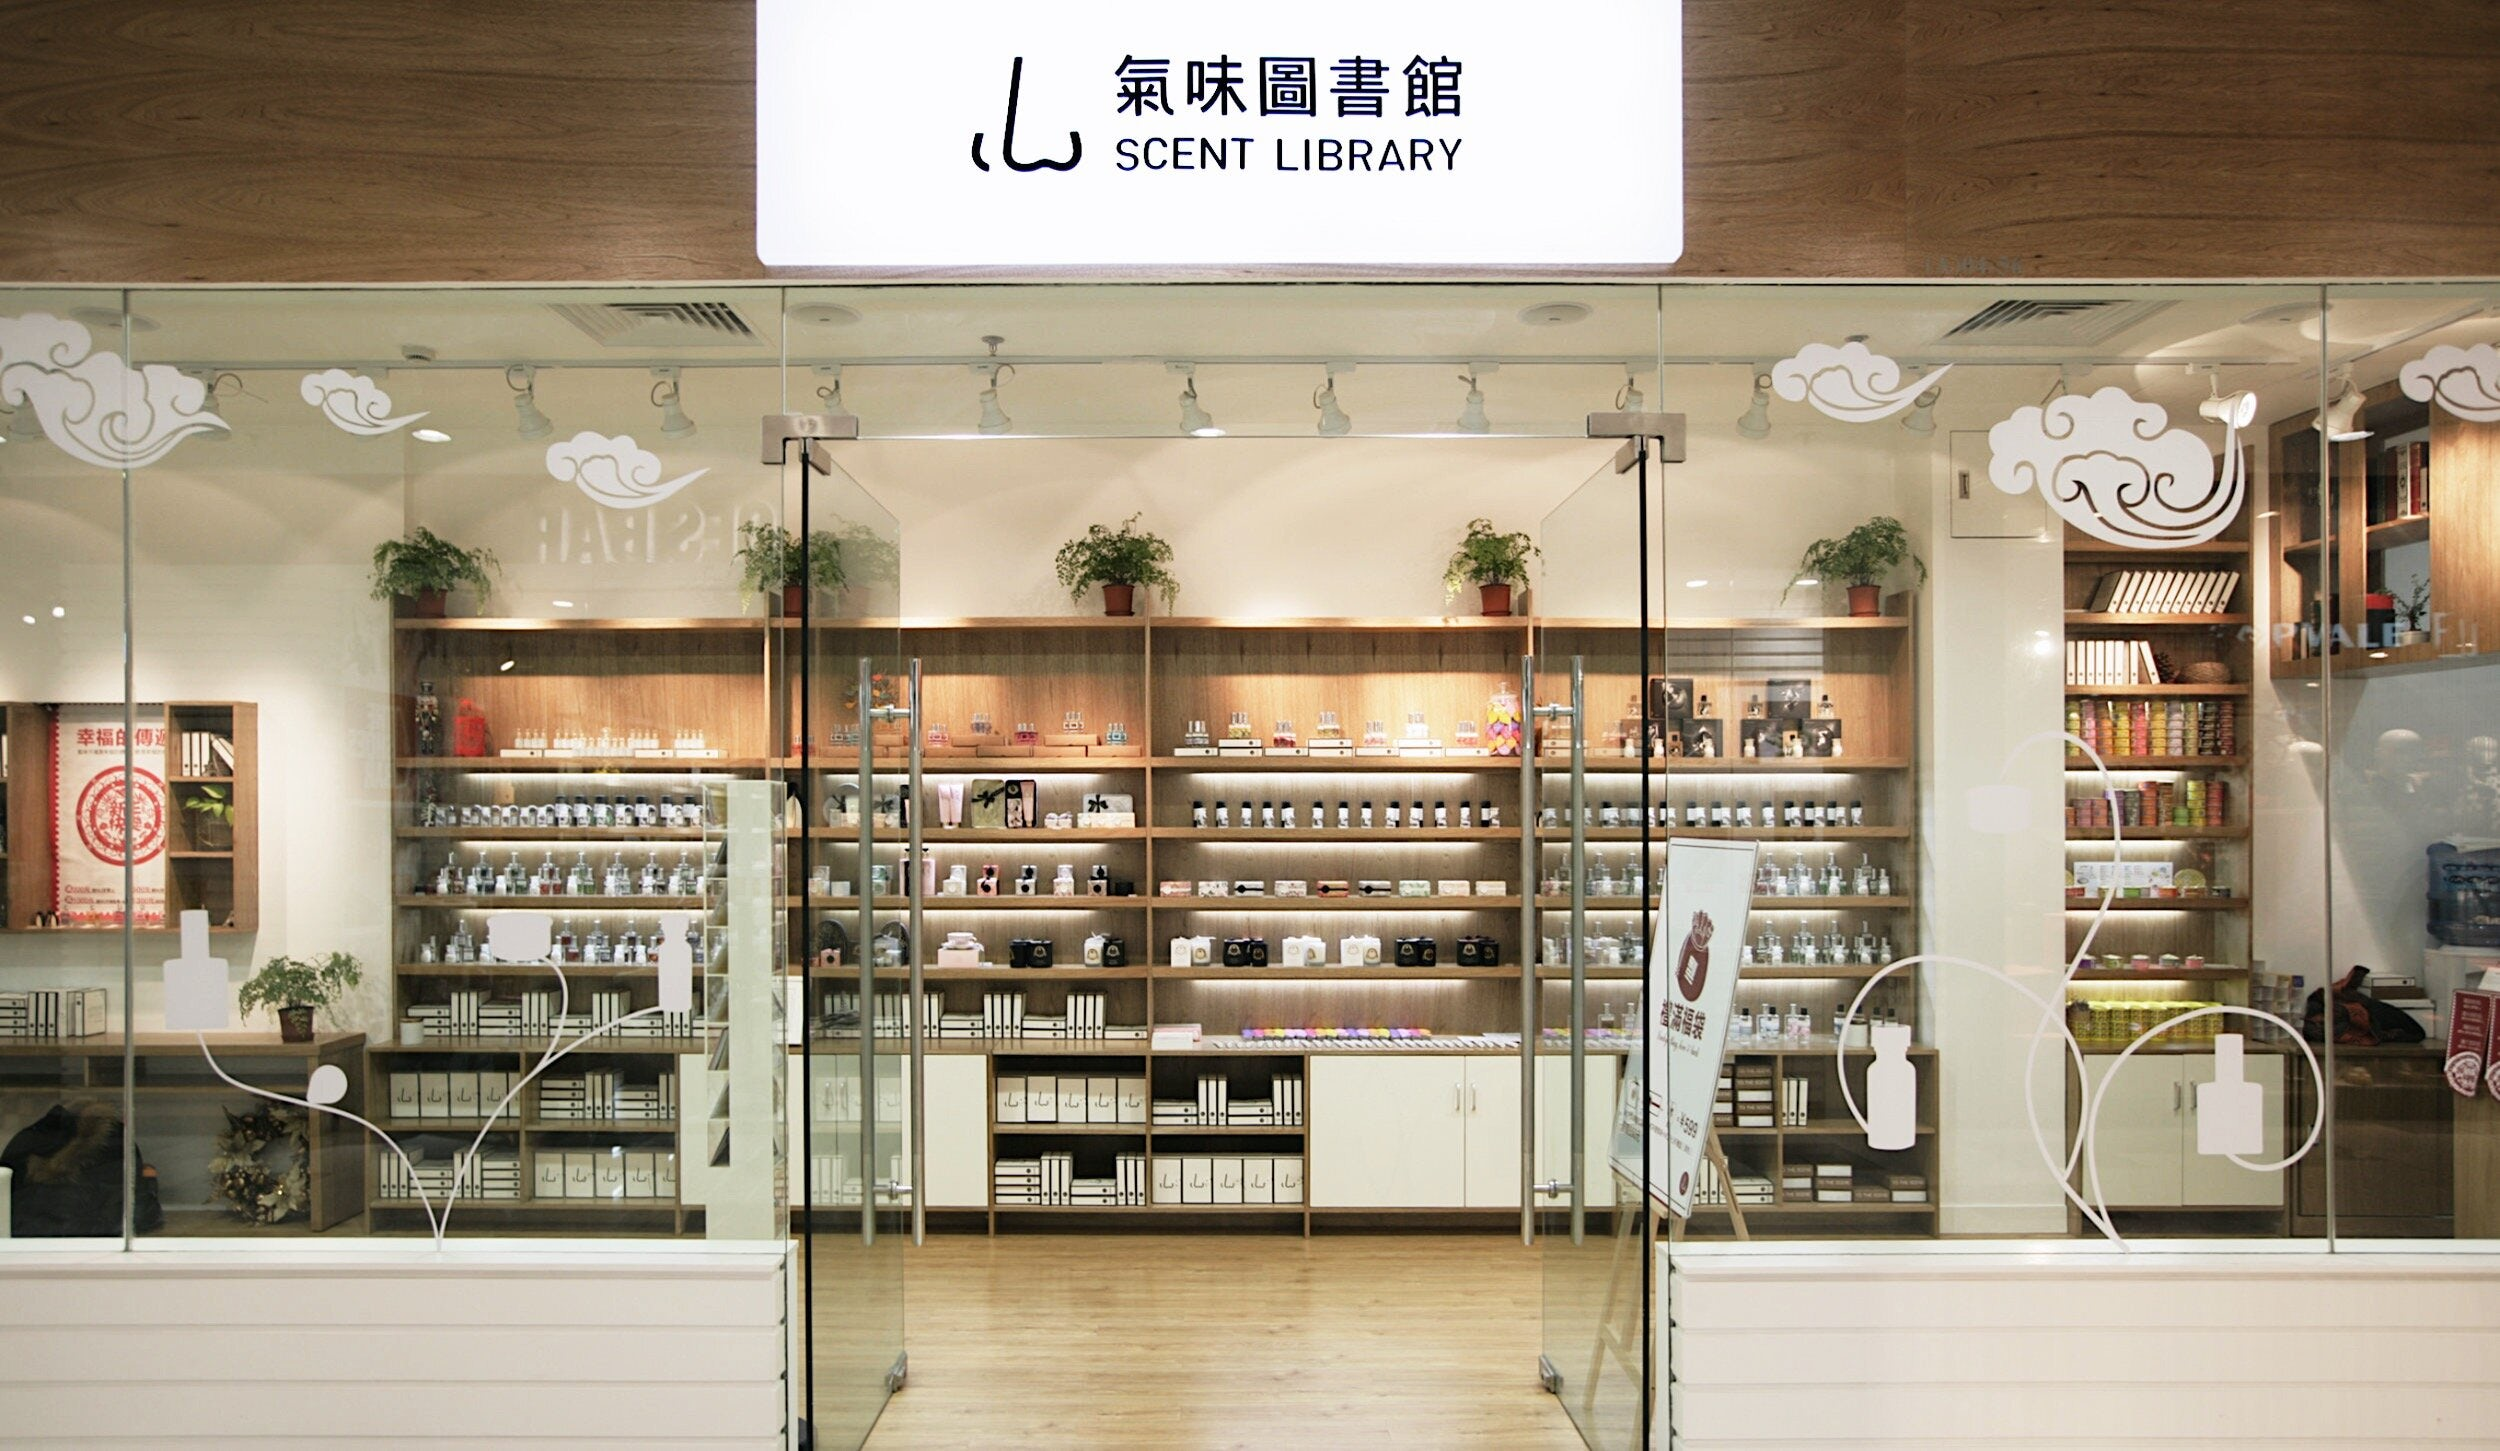 A Scent Library store. Scent Library.